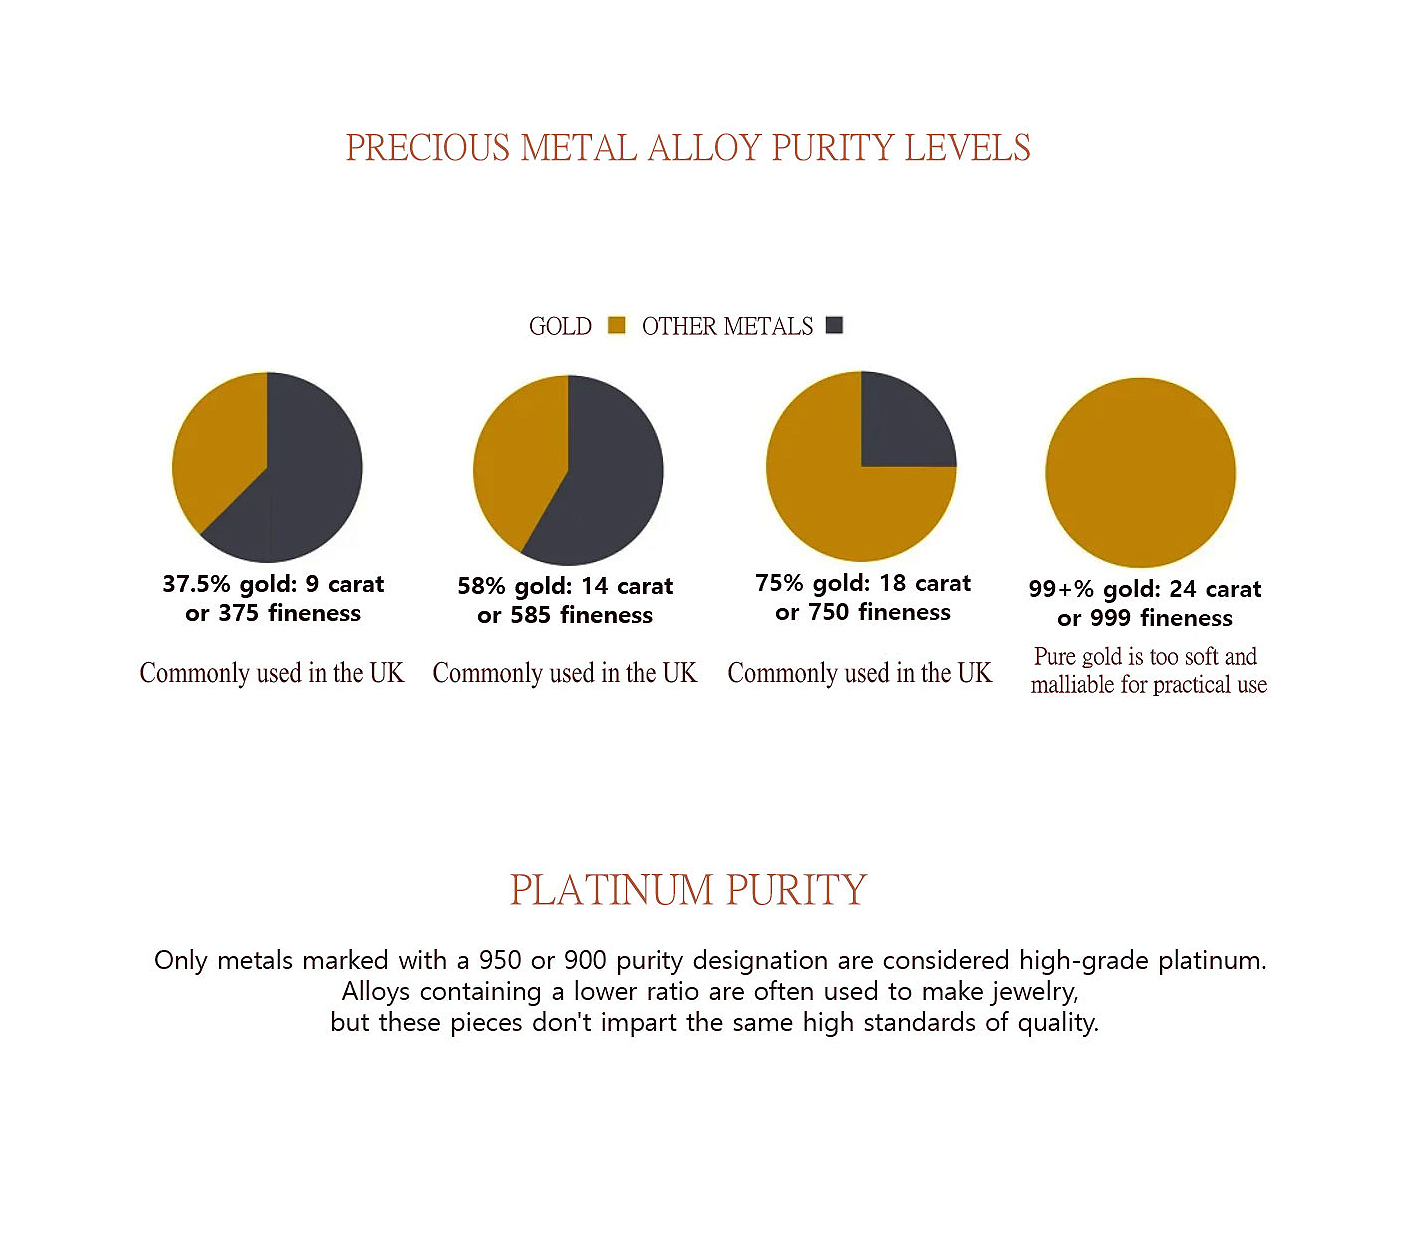 purity-of-gold-9-carat-14-karat-18-carat-24-carat-uk